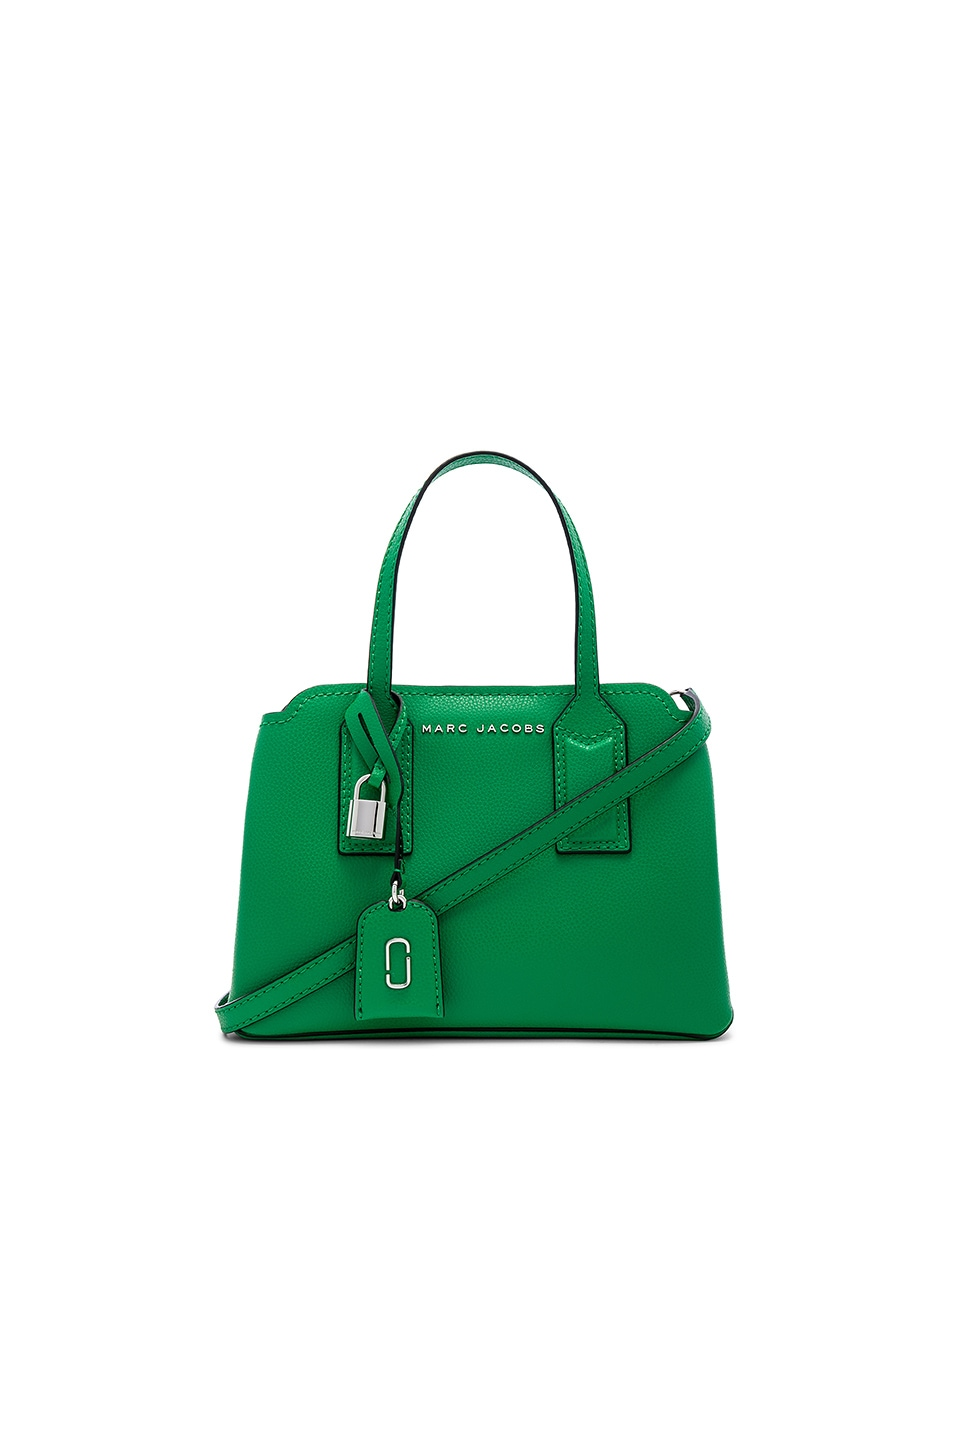 Marc Jacobs The Editor 29 Tote Bag in Pepper Green